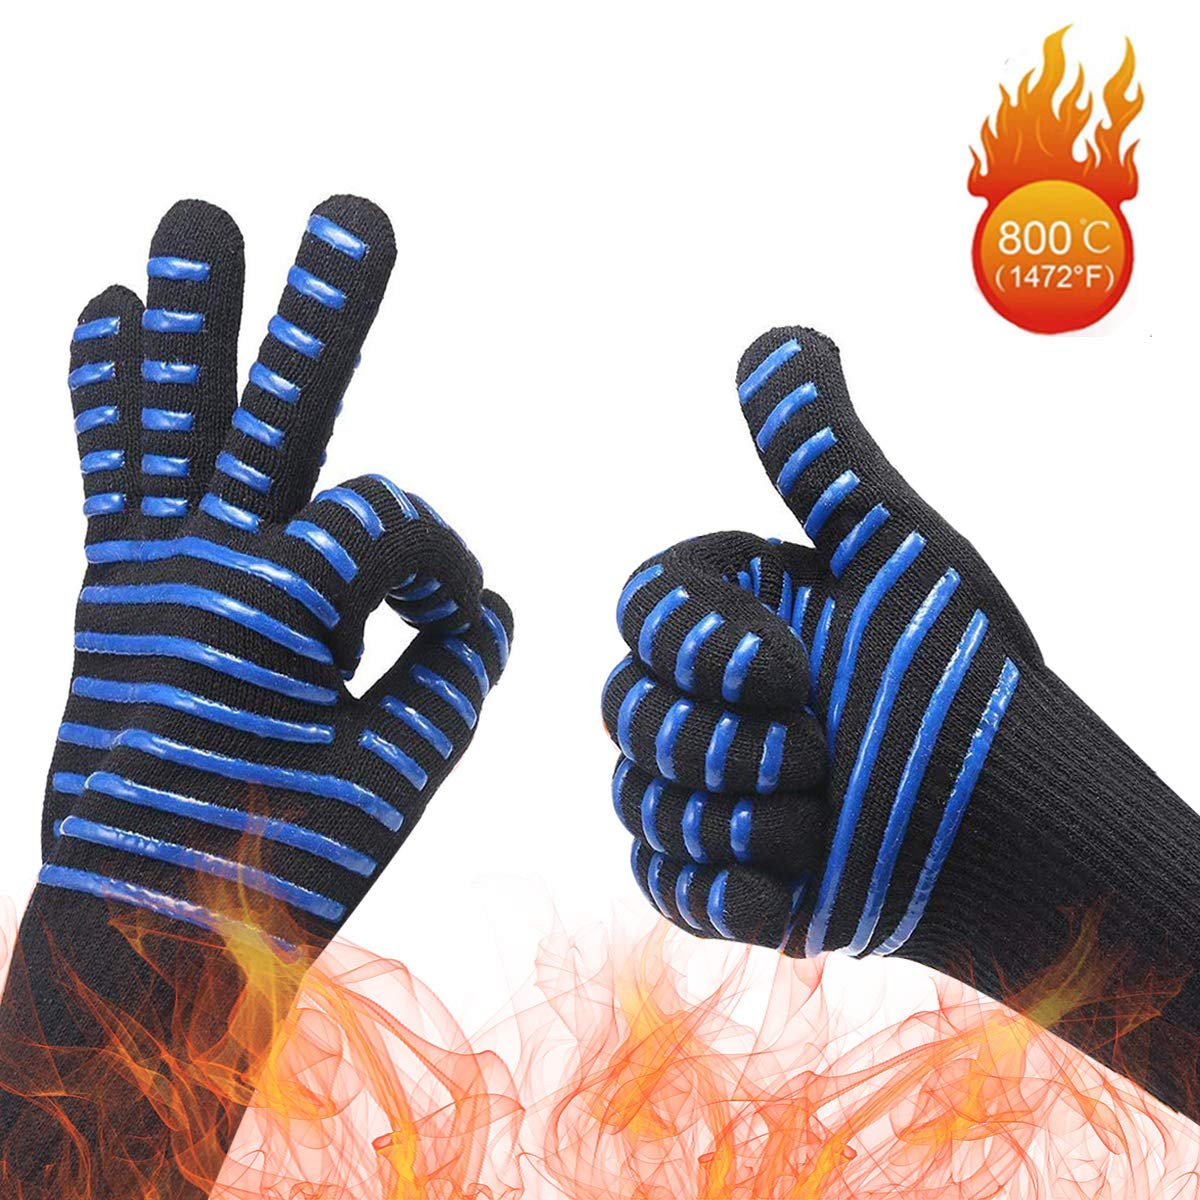 MYUREN BBQ Cooking Grill Gloves 1472°F Professional Heat Resistant Gloves Food Grade Kitchen Oven Gloves Heatproof Adiabatic Silicone Insulated Cooking Oven Mitts for Grilling,Welding,Baking, 1 Pair